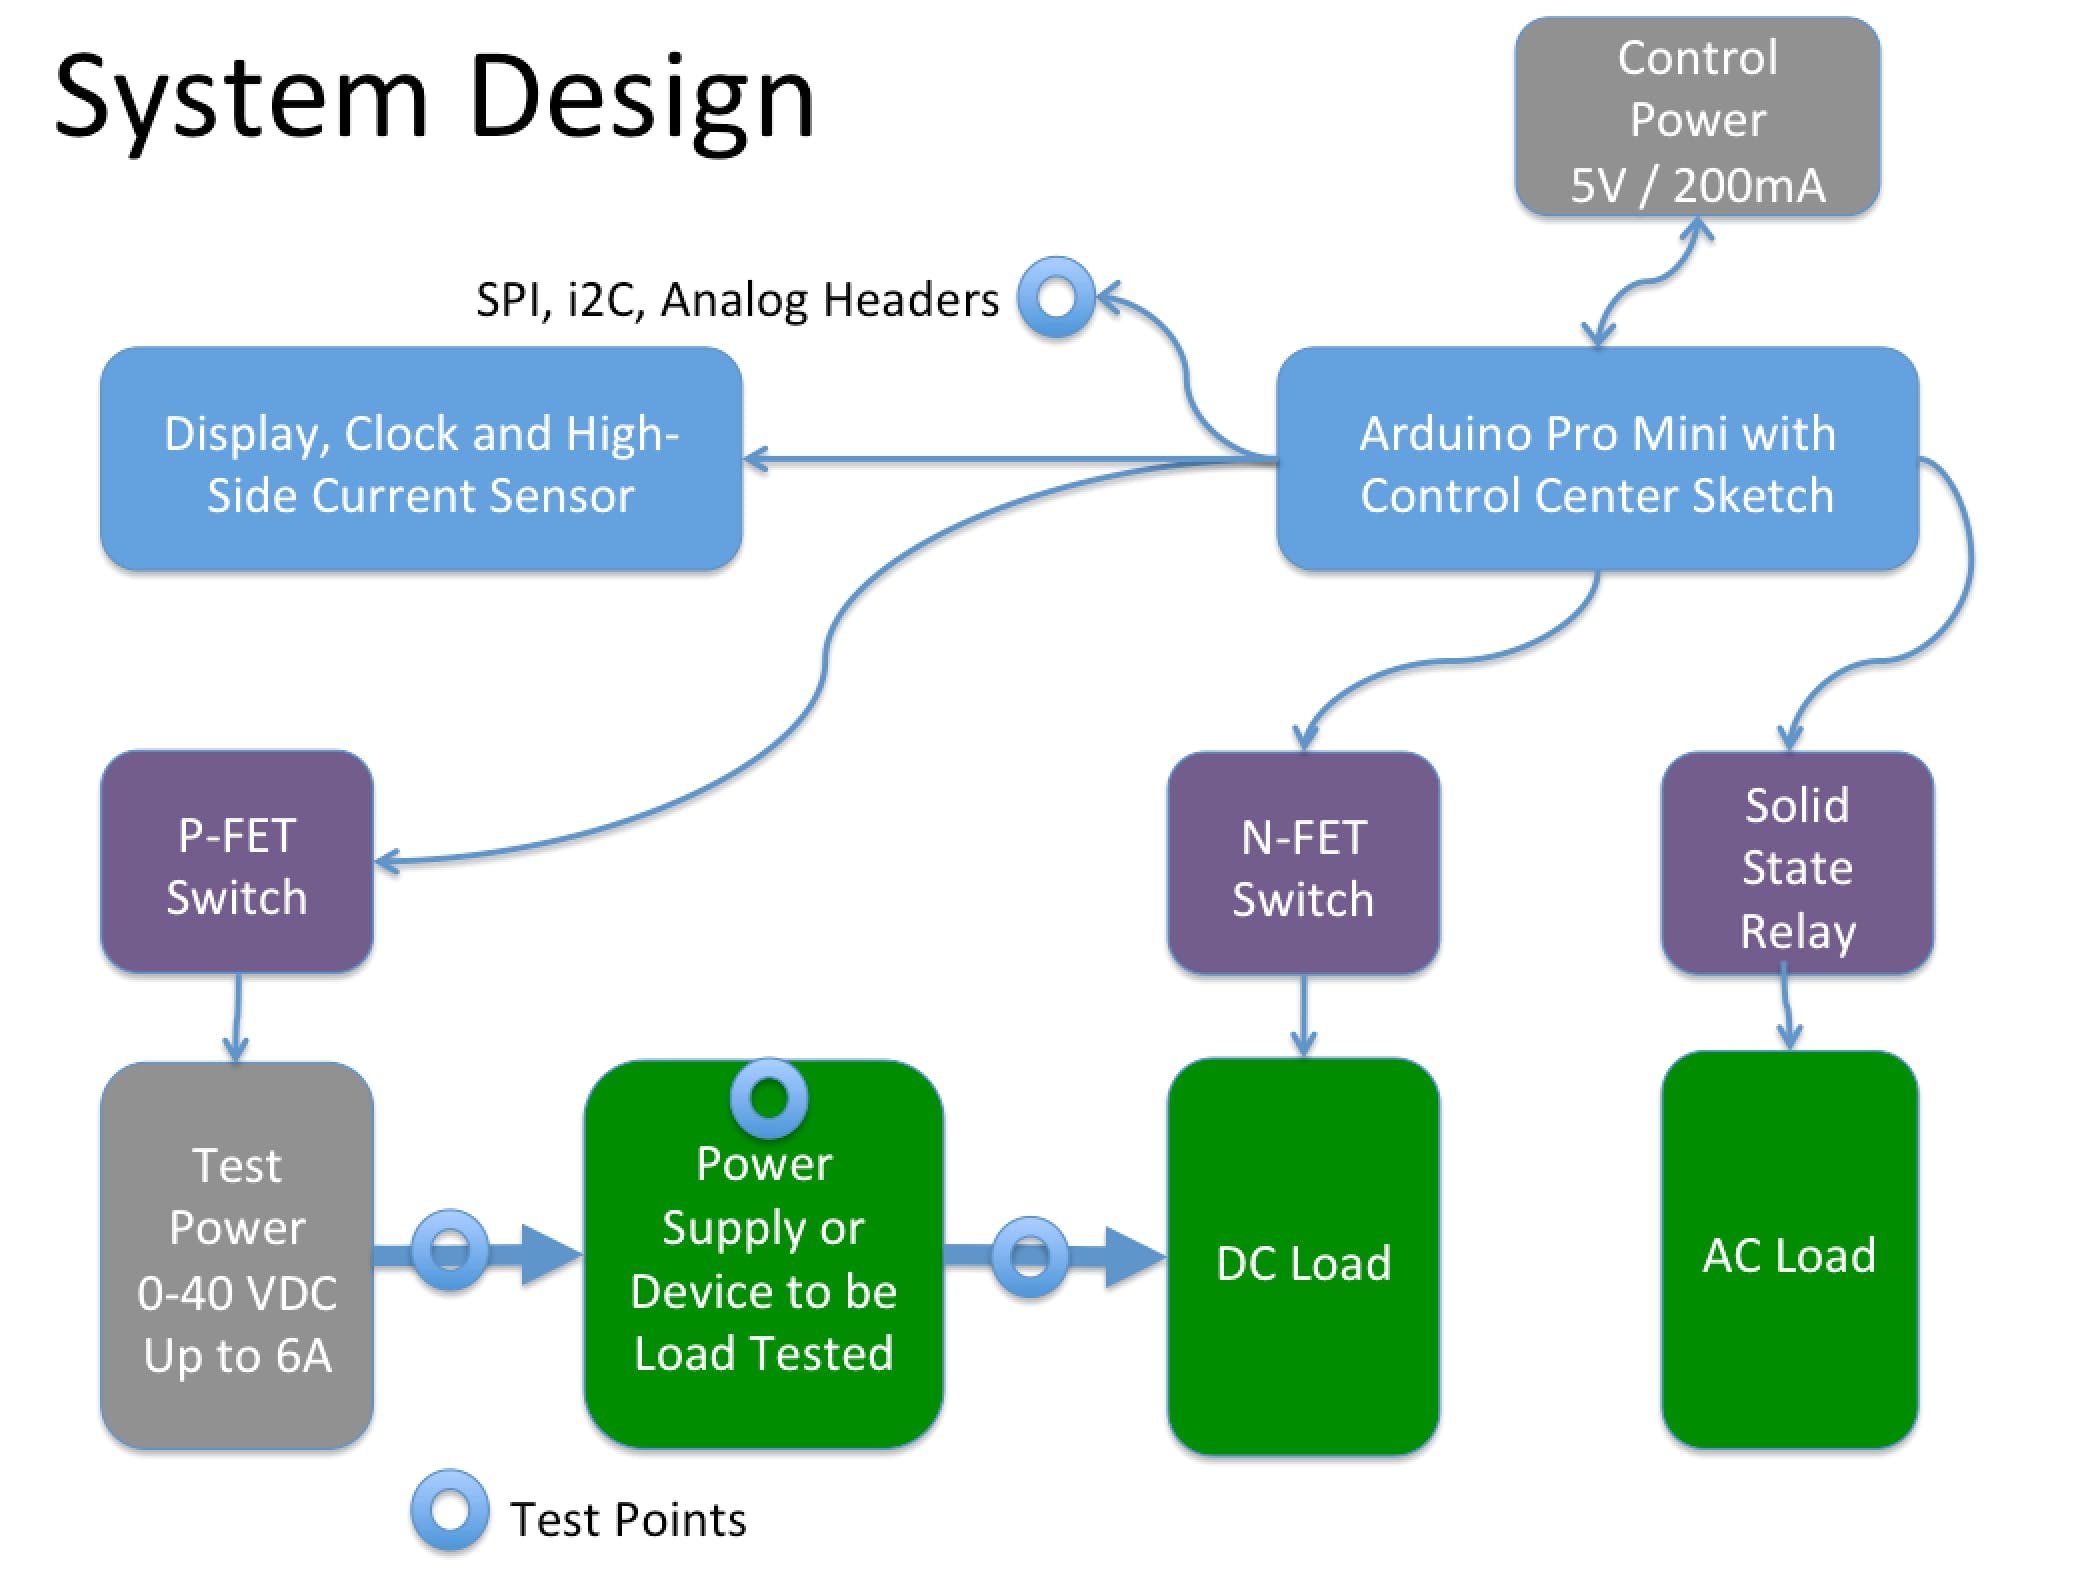 System Design for the Board